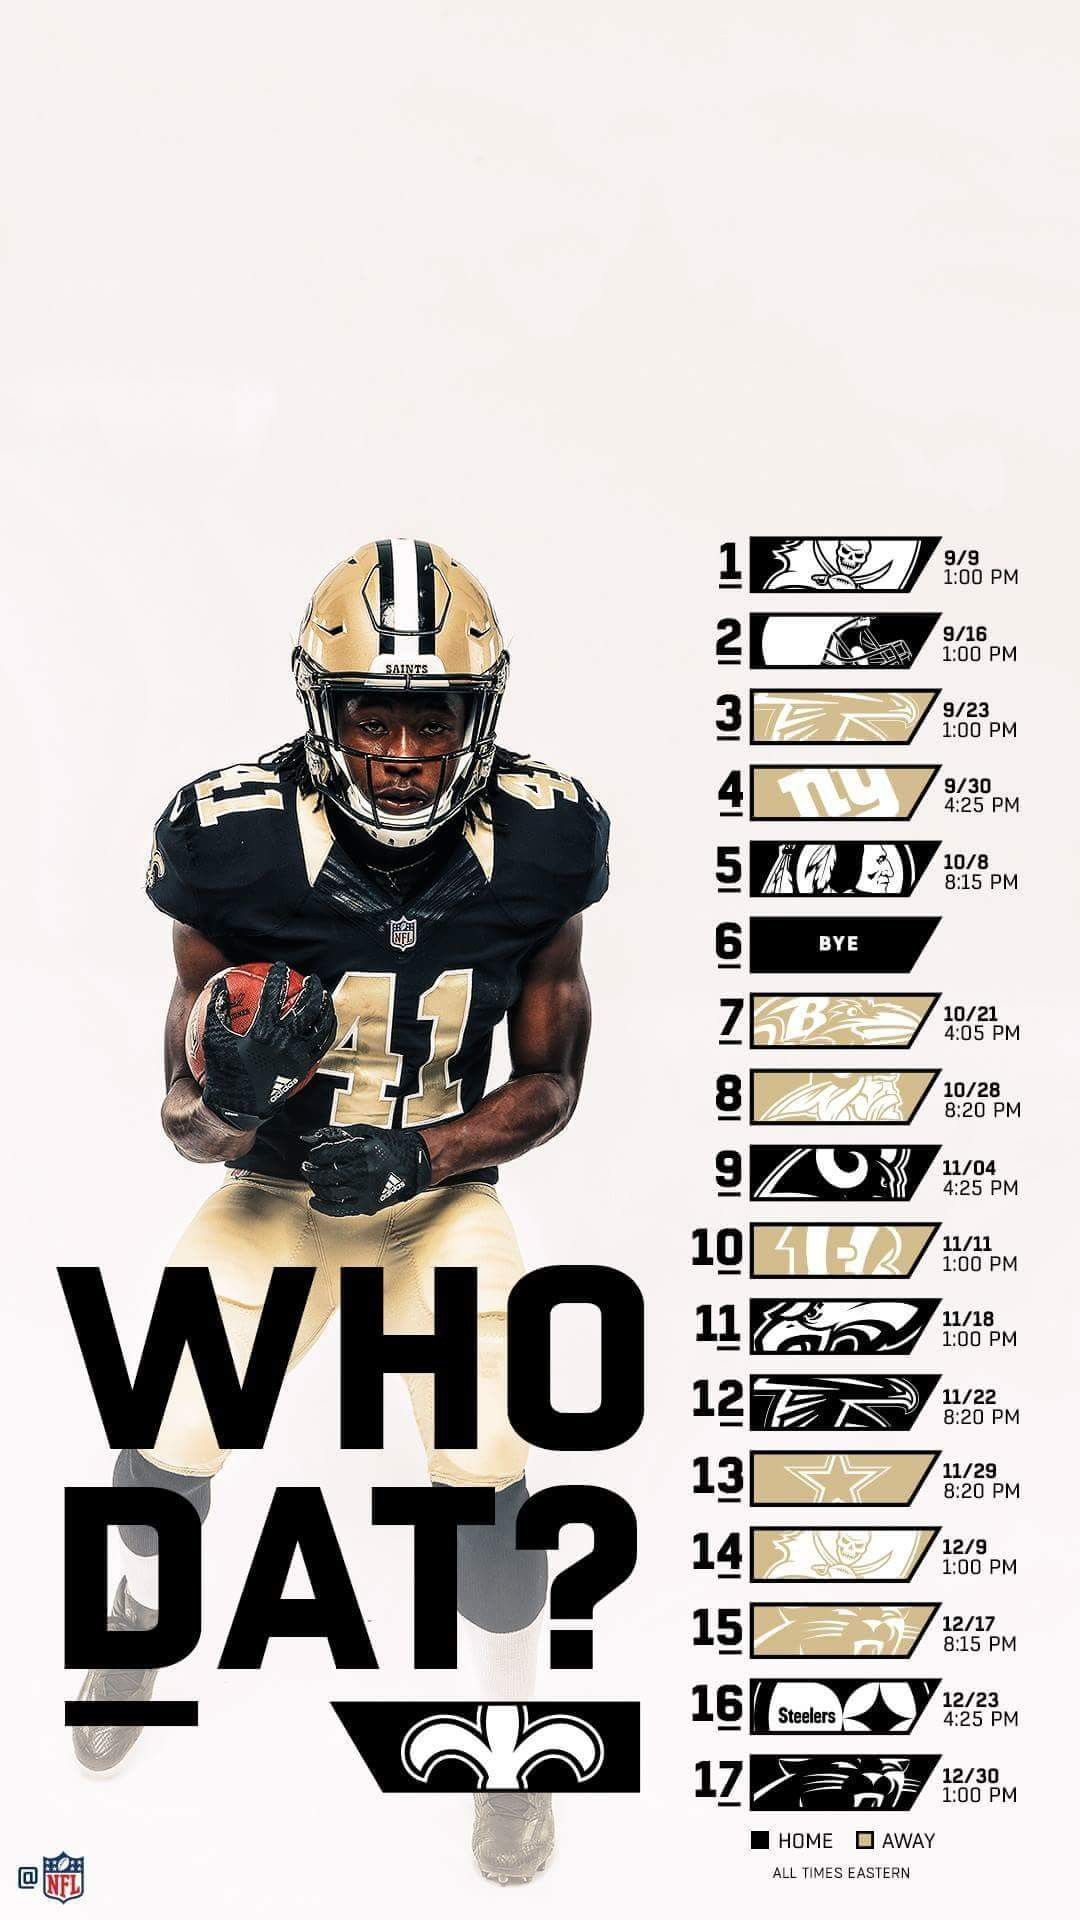 New Orleans Saints 2018 iPhone and Android Schedule wallpaper. #Whodat